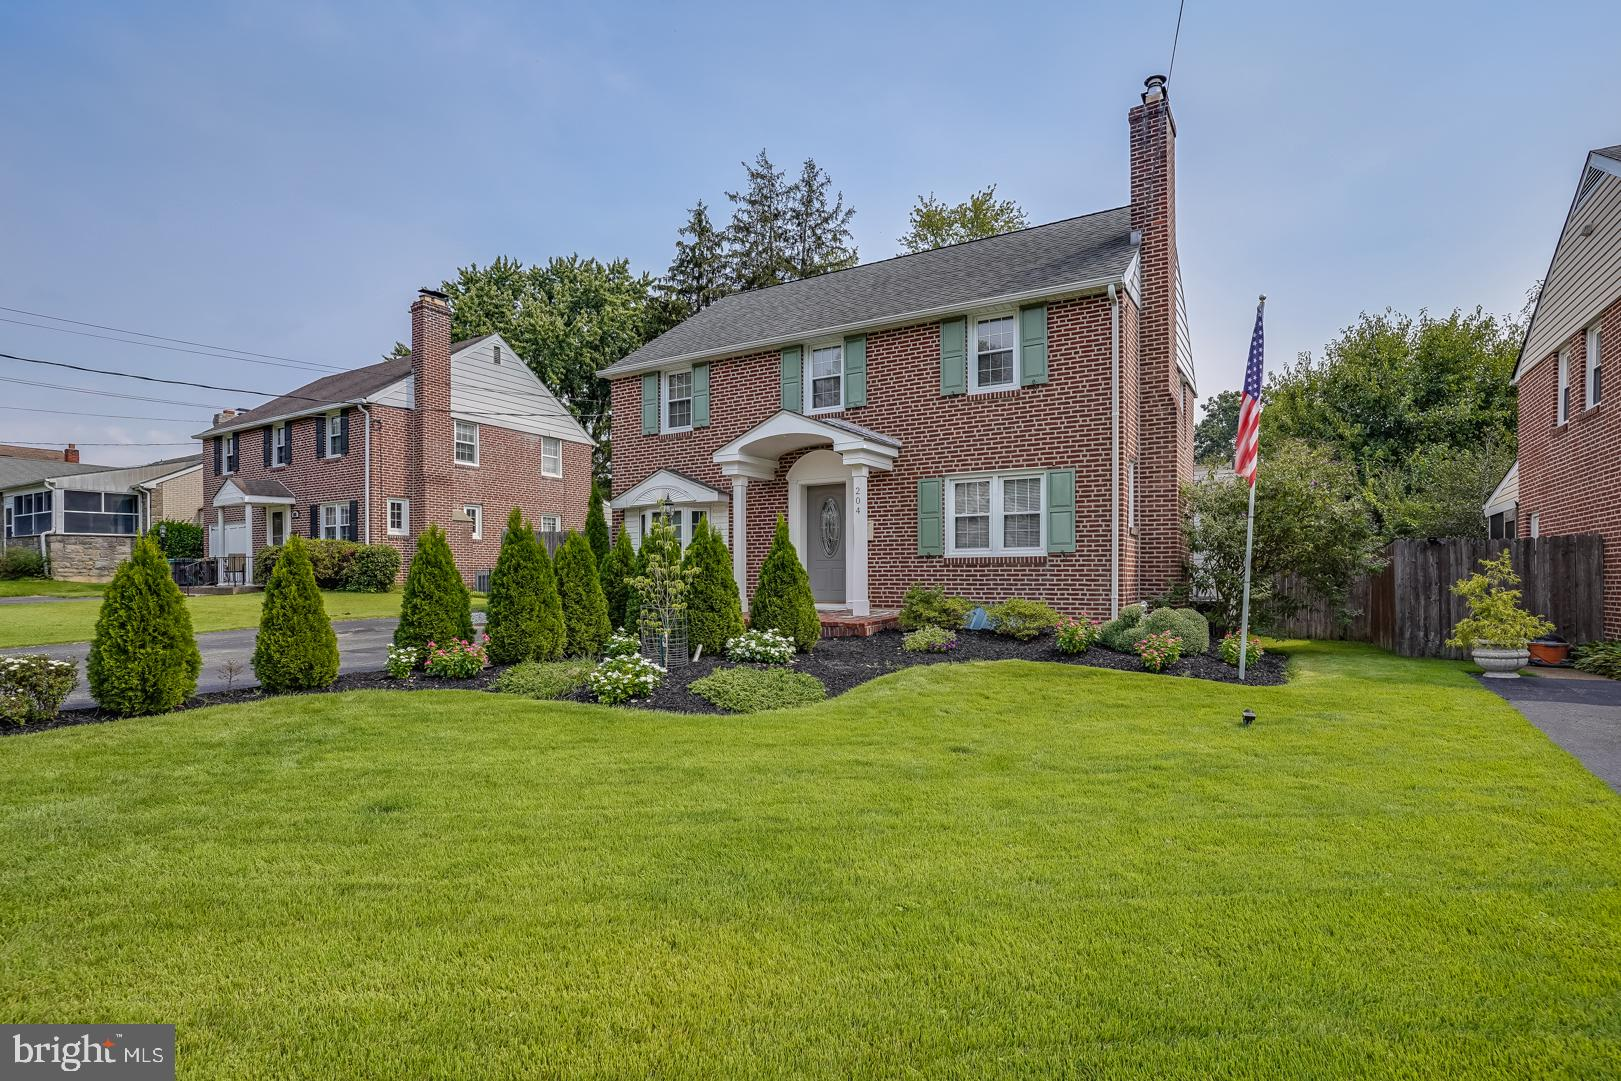 This lovely brick colonial in conveniently located Lancaster Village has a floor plan that just keeps going and going! The main floor features a formal living room with fireplace with wood stove insert that opens to a spacious dining room; a gorgeous updated kitchen including custom cabinets, granite countertops, hardwood floors, stainless steel appliances, slide-in gas range with convection oven, and a convection microwave oven; a massive great room with large windows, a gas fireplace, and an updated powder room; a charming laundry room; a sunny office or play room with bay window and window seat; and a gorgeous screened-in porch with bar and brick patio that are perfect for entertaining! Upstairs you'll find three large bedrooms, an enormous full bathroom with clawfoot tub, shower stall, double vanity, and tile floor. Head to the basement for a finished area that can be used for crafting, a play room, or just additional space to store all of your treasures!  Conveniently located between Lancaster Pike and Kirkwood Highway, you will be near everything you'll ever need - shopping, dining, entertainment, libraries, and many of the areas best schools. Schedule your tour today!